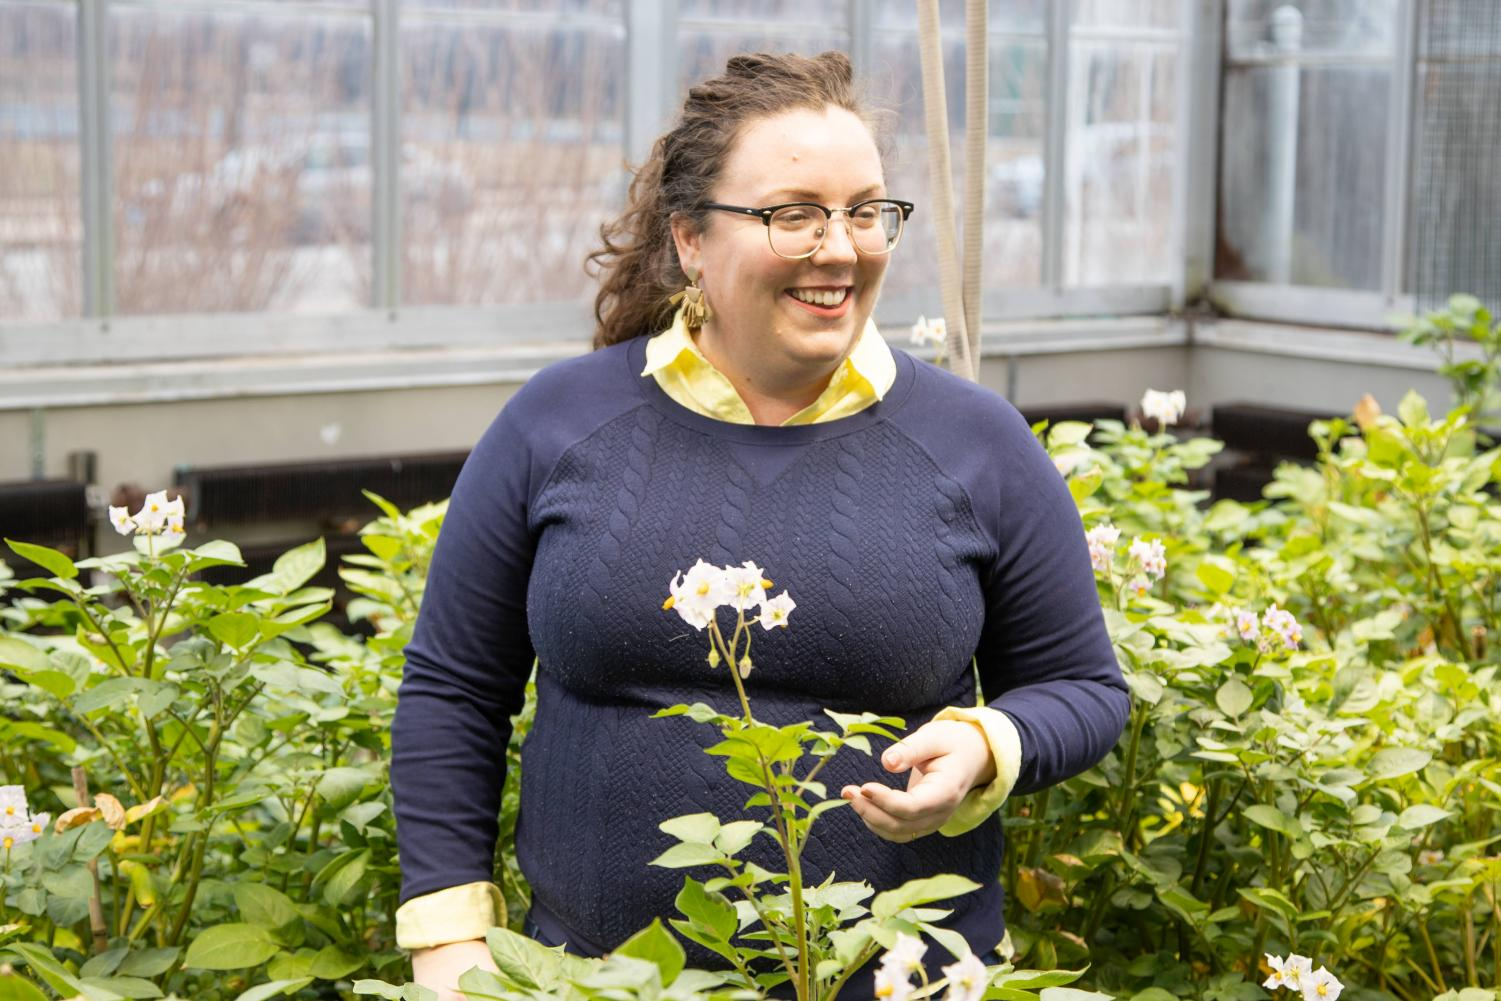 Amanda Cavanagh, a postdoctoral student who helped develop a new method of plant growth in the southernmost greenhouse in the Plant Sciences Laboratory on Friday. The new method currently produces 40 percent more plant growth.